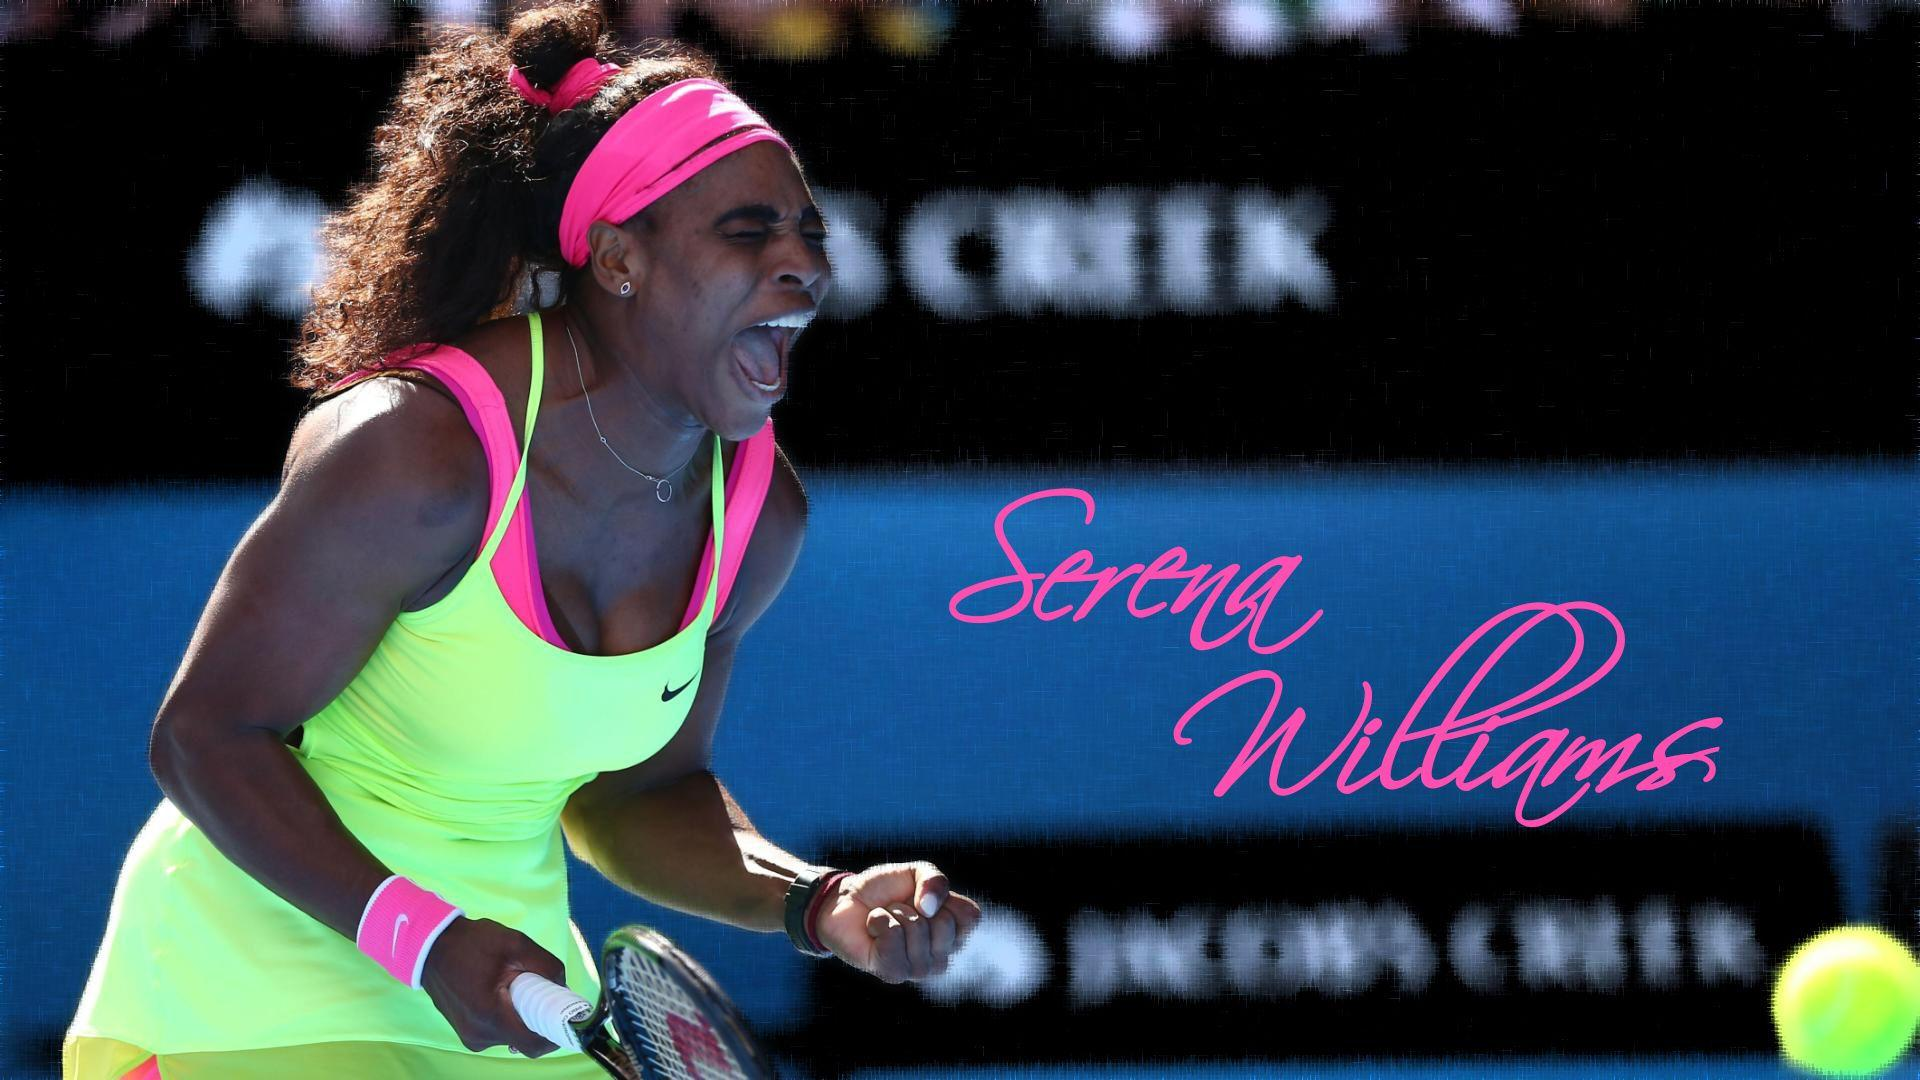 Serena Williams 2018 Wallpapers